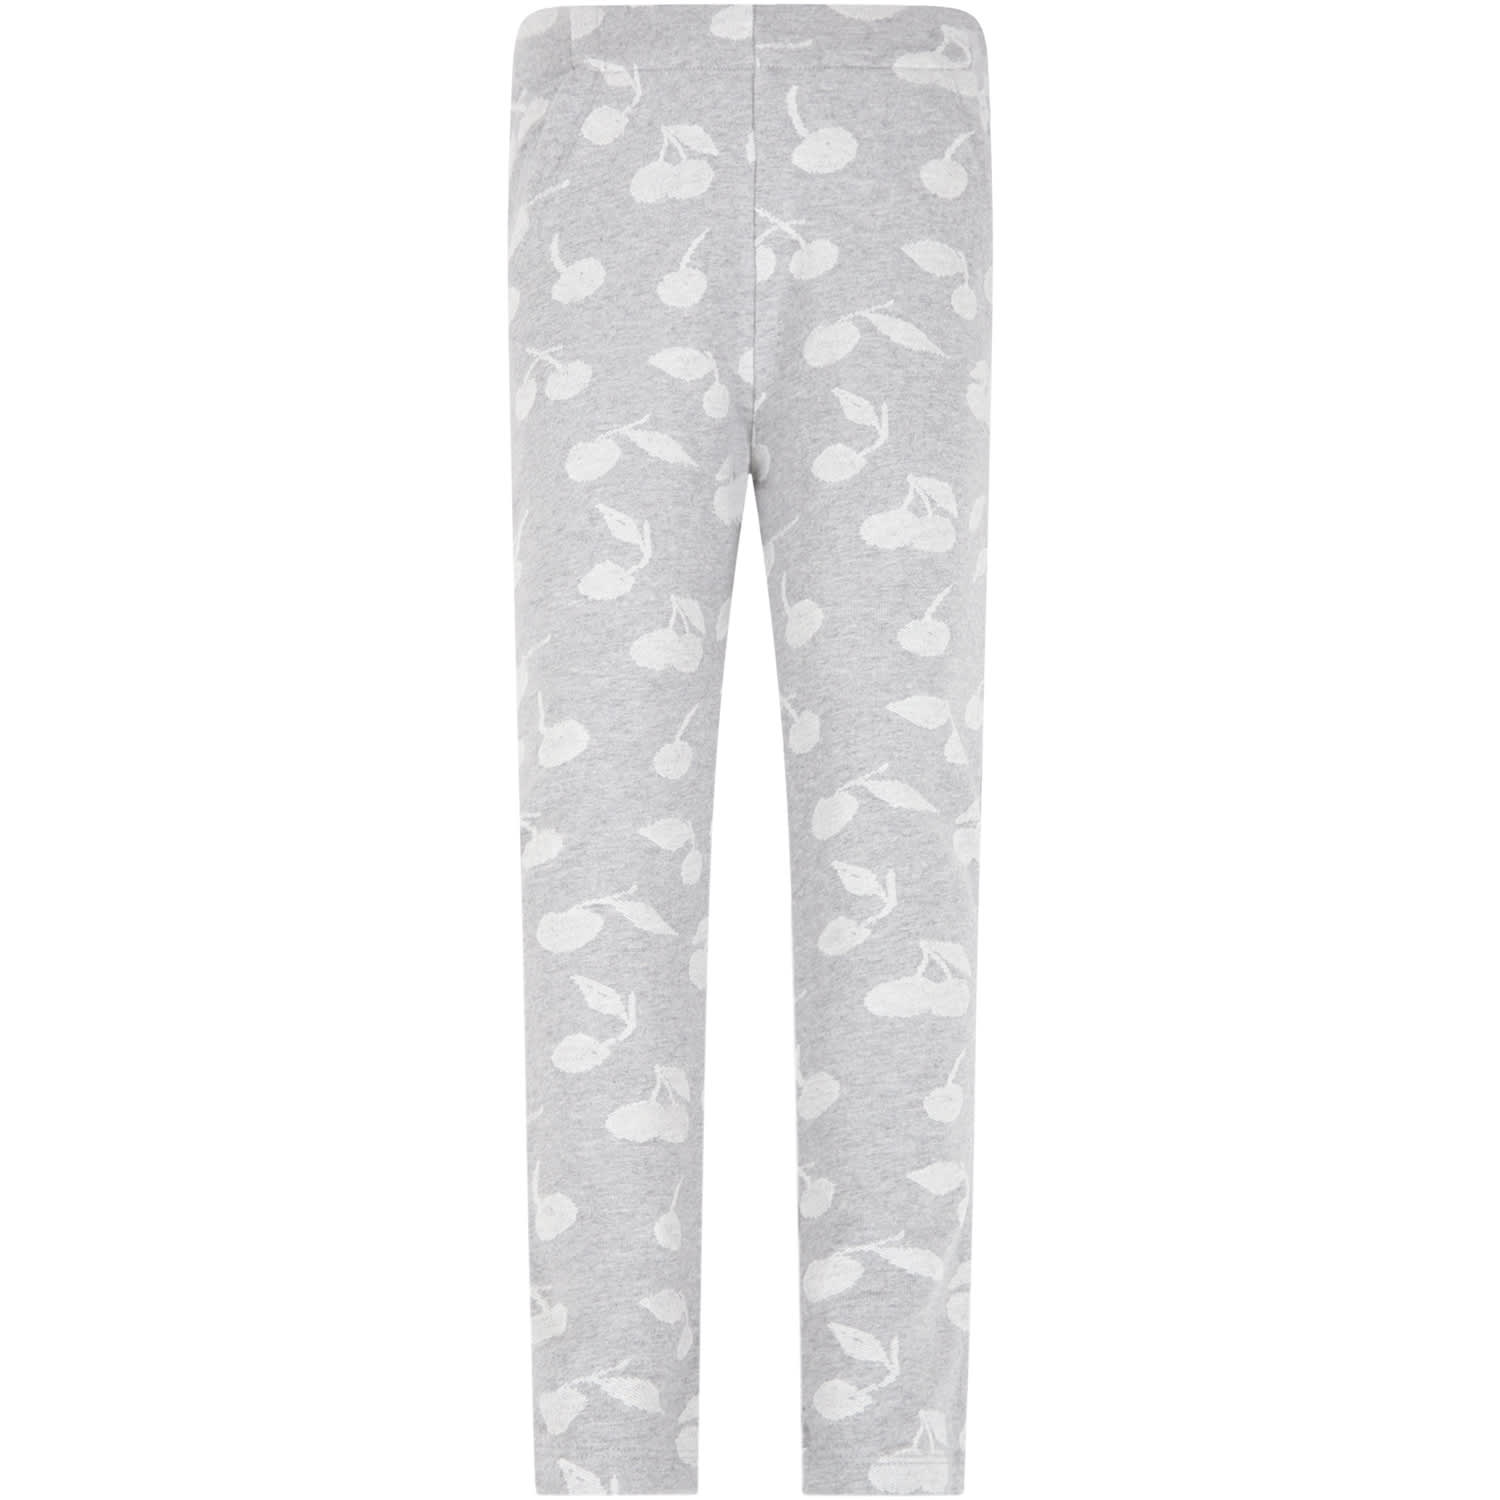 Grey Sweatpants For Girl With Cherries